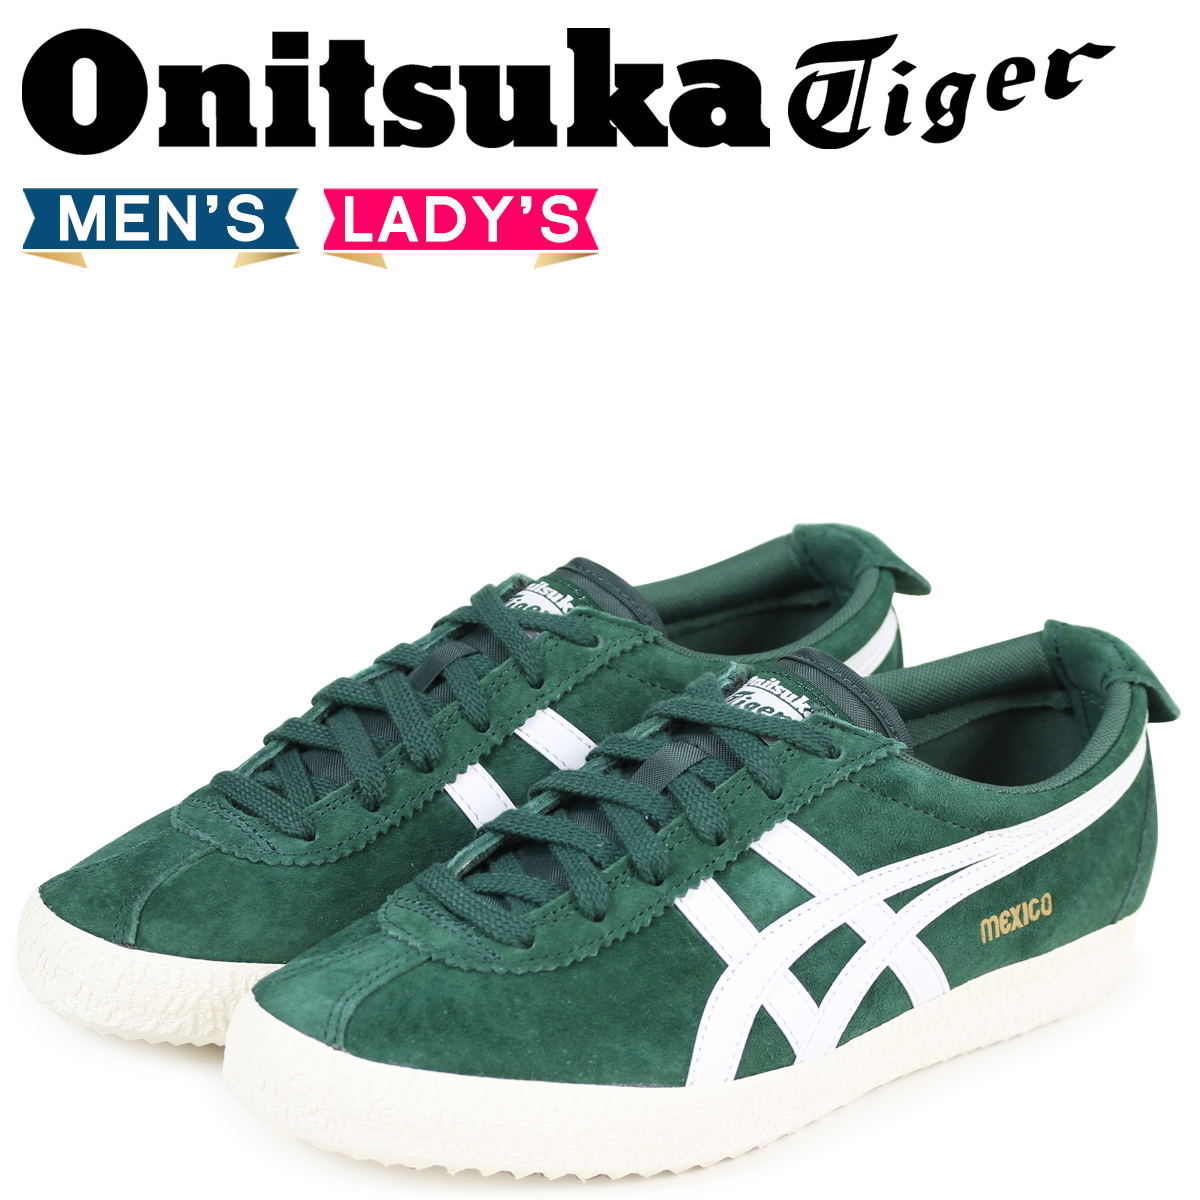 best website dca05 0d256 Onitsuka Tiger Mexico Onitsuka tiger MEXICO DELEGATION men gap Dis sneakers  D6E7L-7901 green